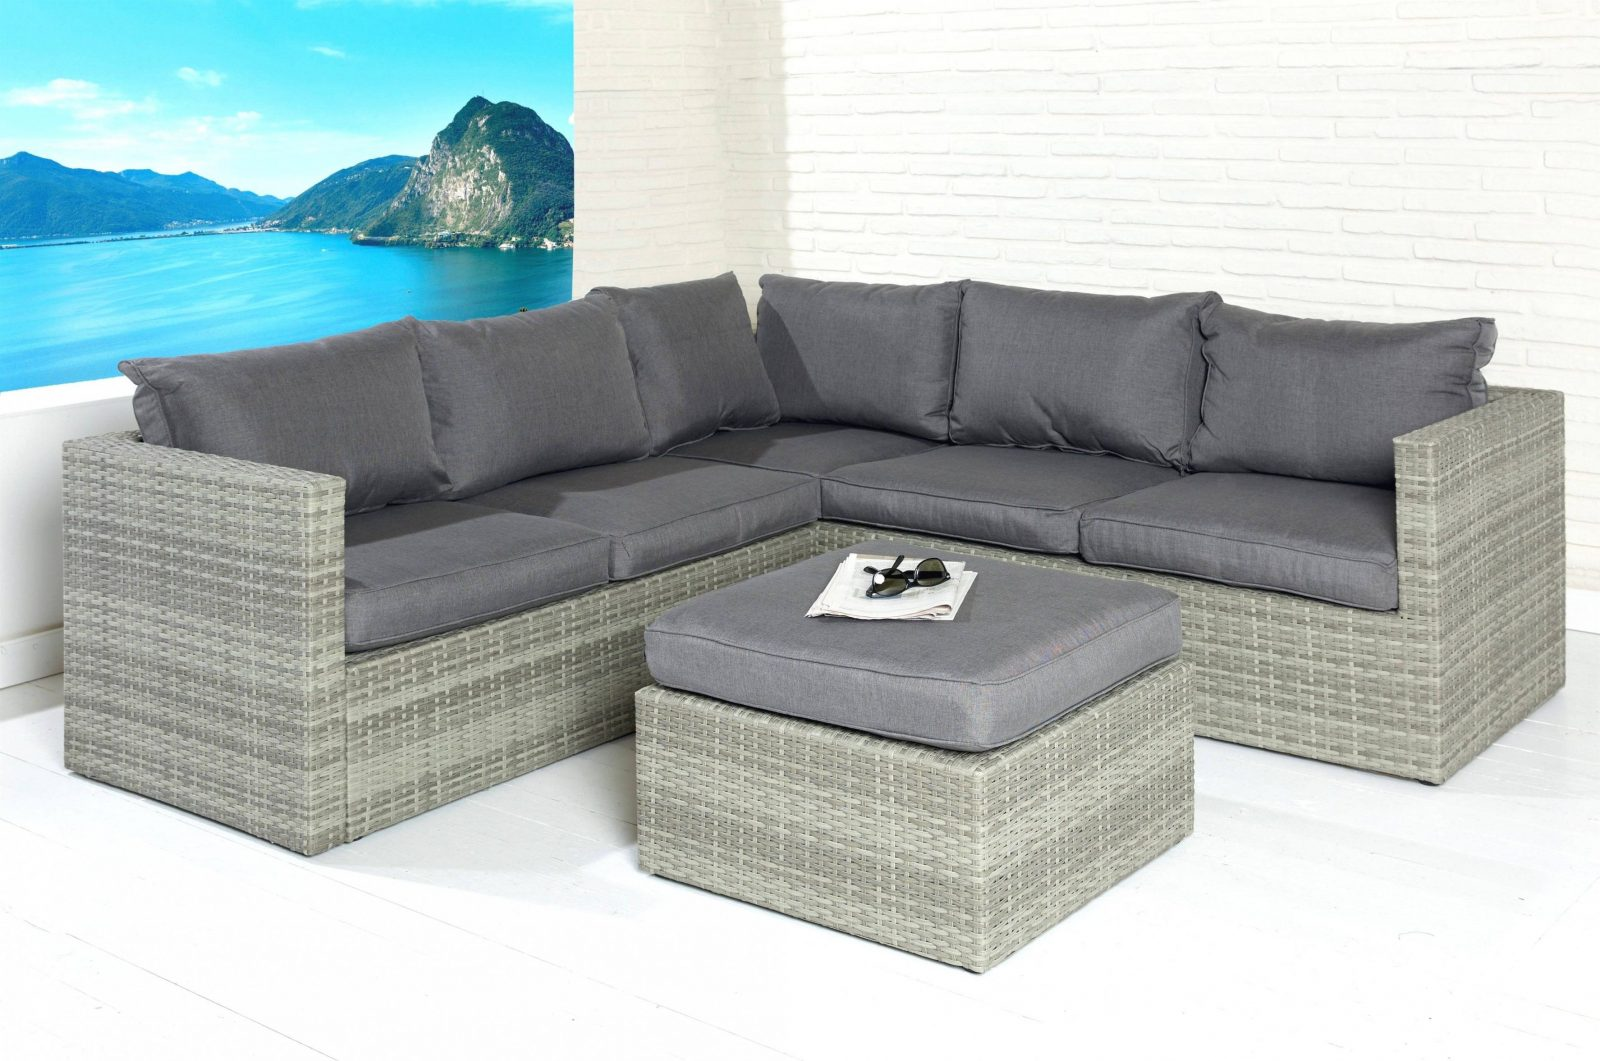 Lounge set garten g nstig haus design ideen - Garten lounge set gunstig ...